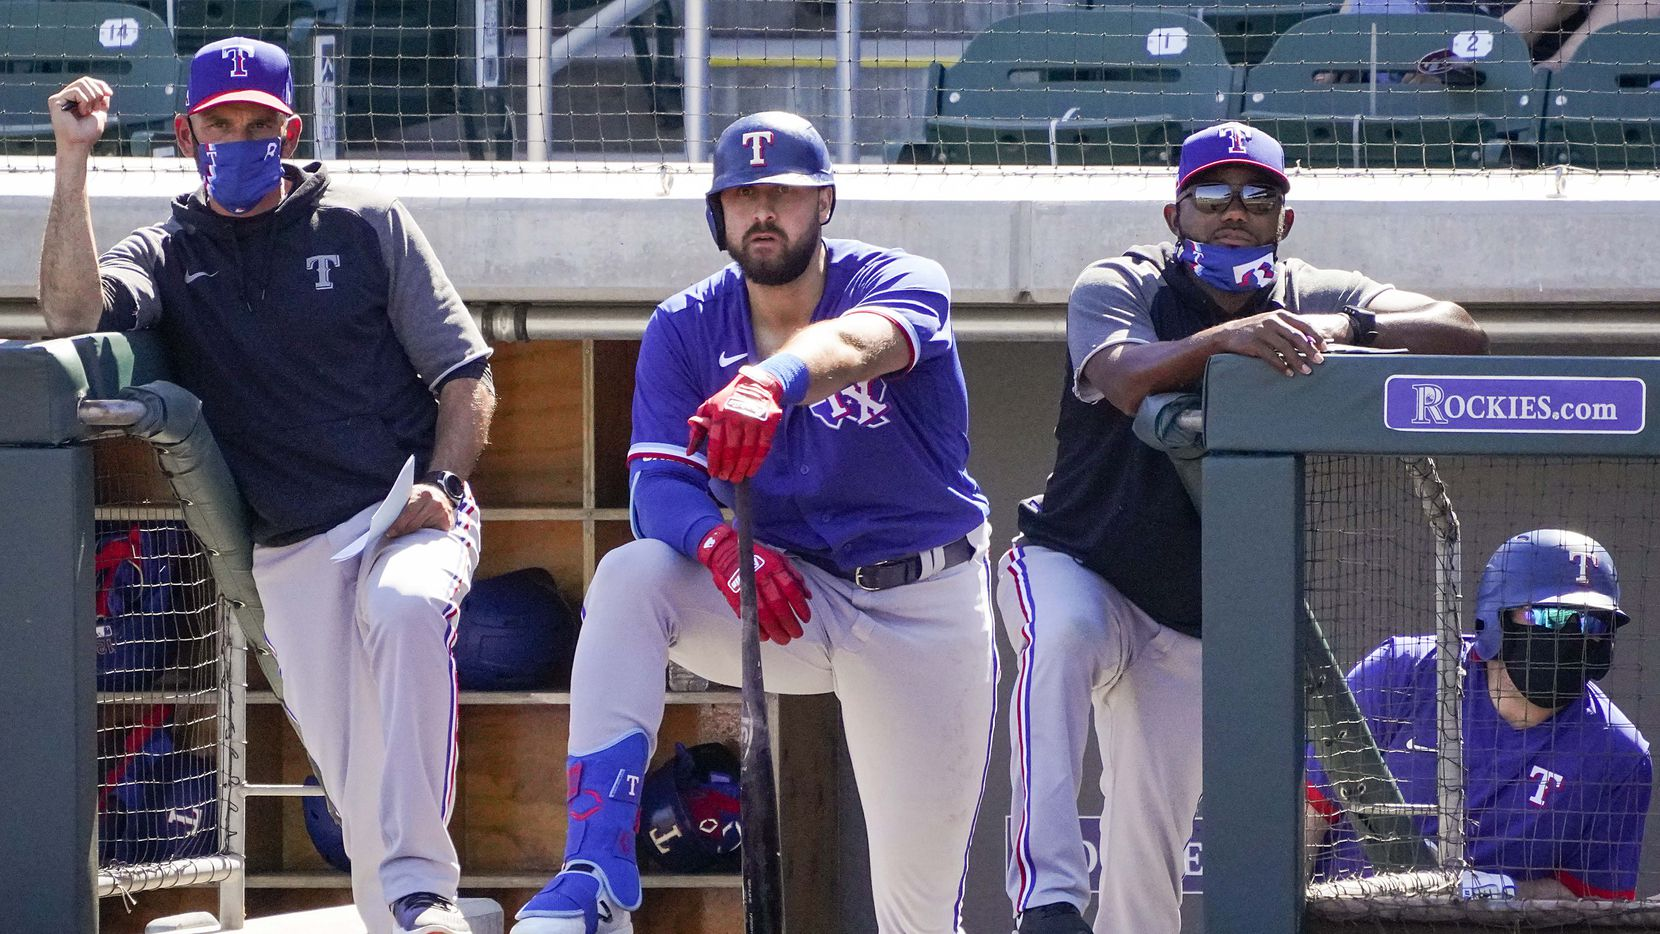 Texas Rangers manager Chris Woodward (left), outfielder Joey Gallo (center) and assistant hitting coach Callix Crabbe watch from the dugout during the third inning of a spring training game against the Arizona Diamondbacks at Salt River Fields at Talking Stick on Saturday, March 6, 2021, in Scottsdale, Ariz.